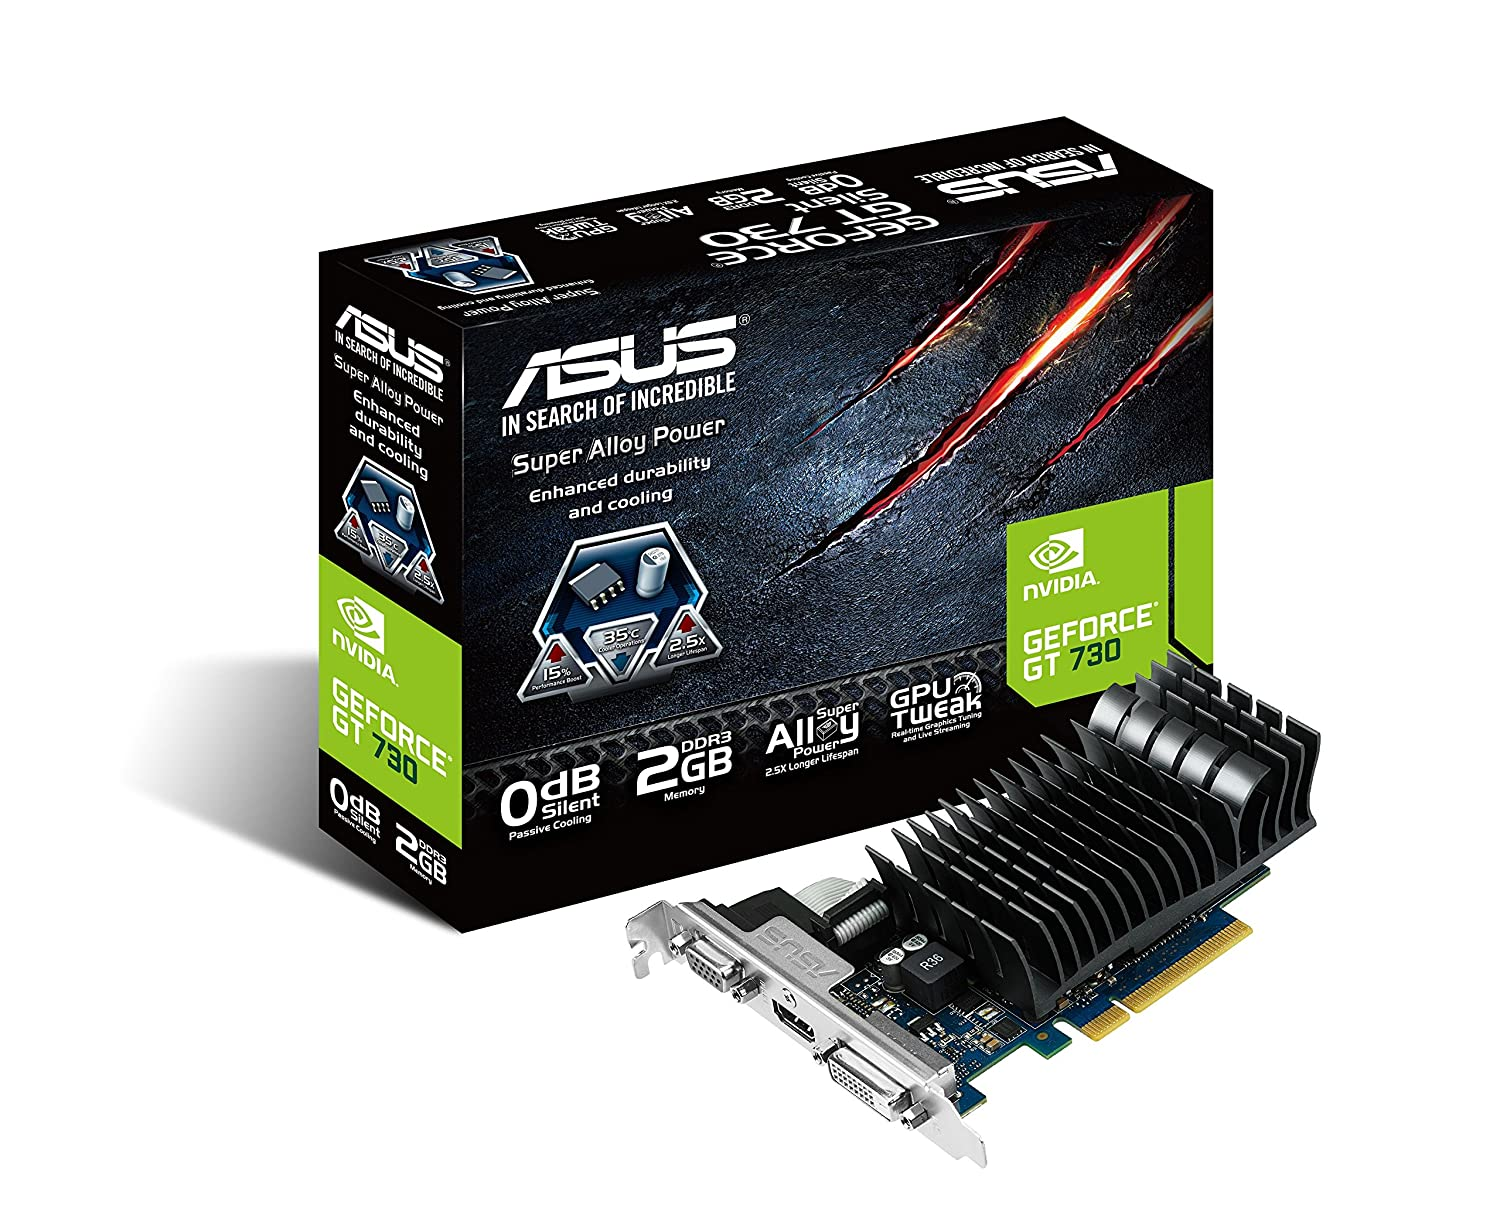 ASUS VGA CARD WINDOWS 7 DRIVER DOWNLOAD